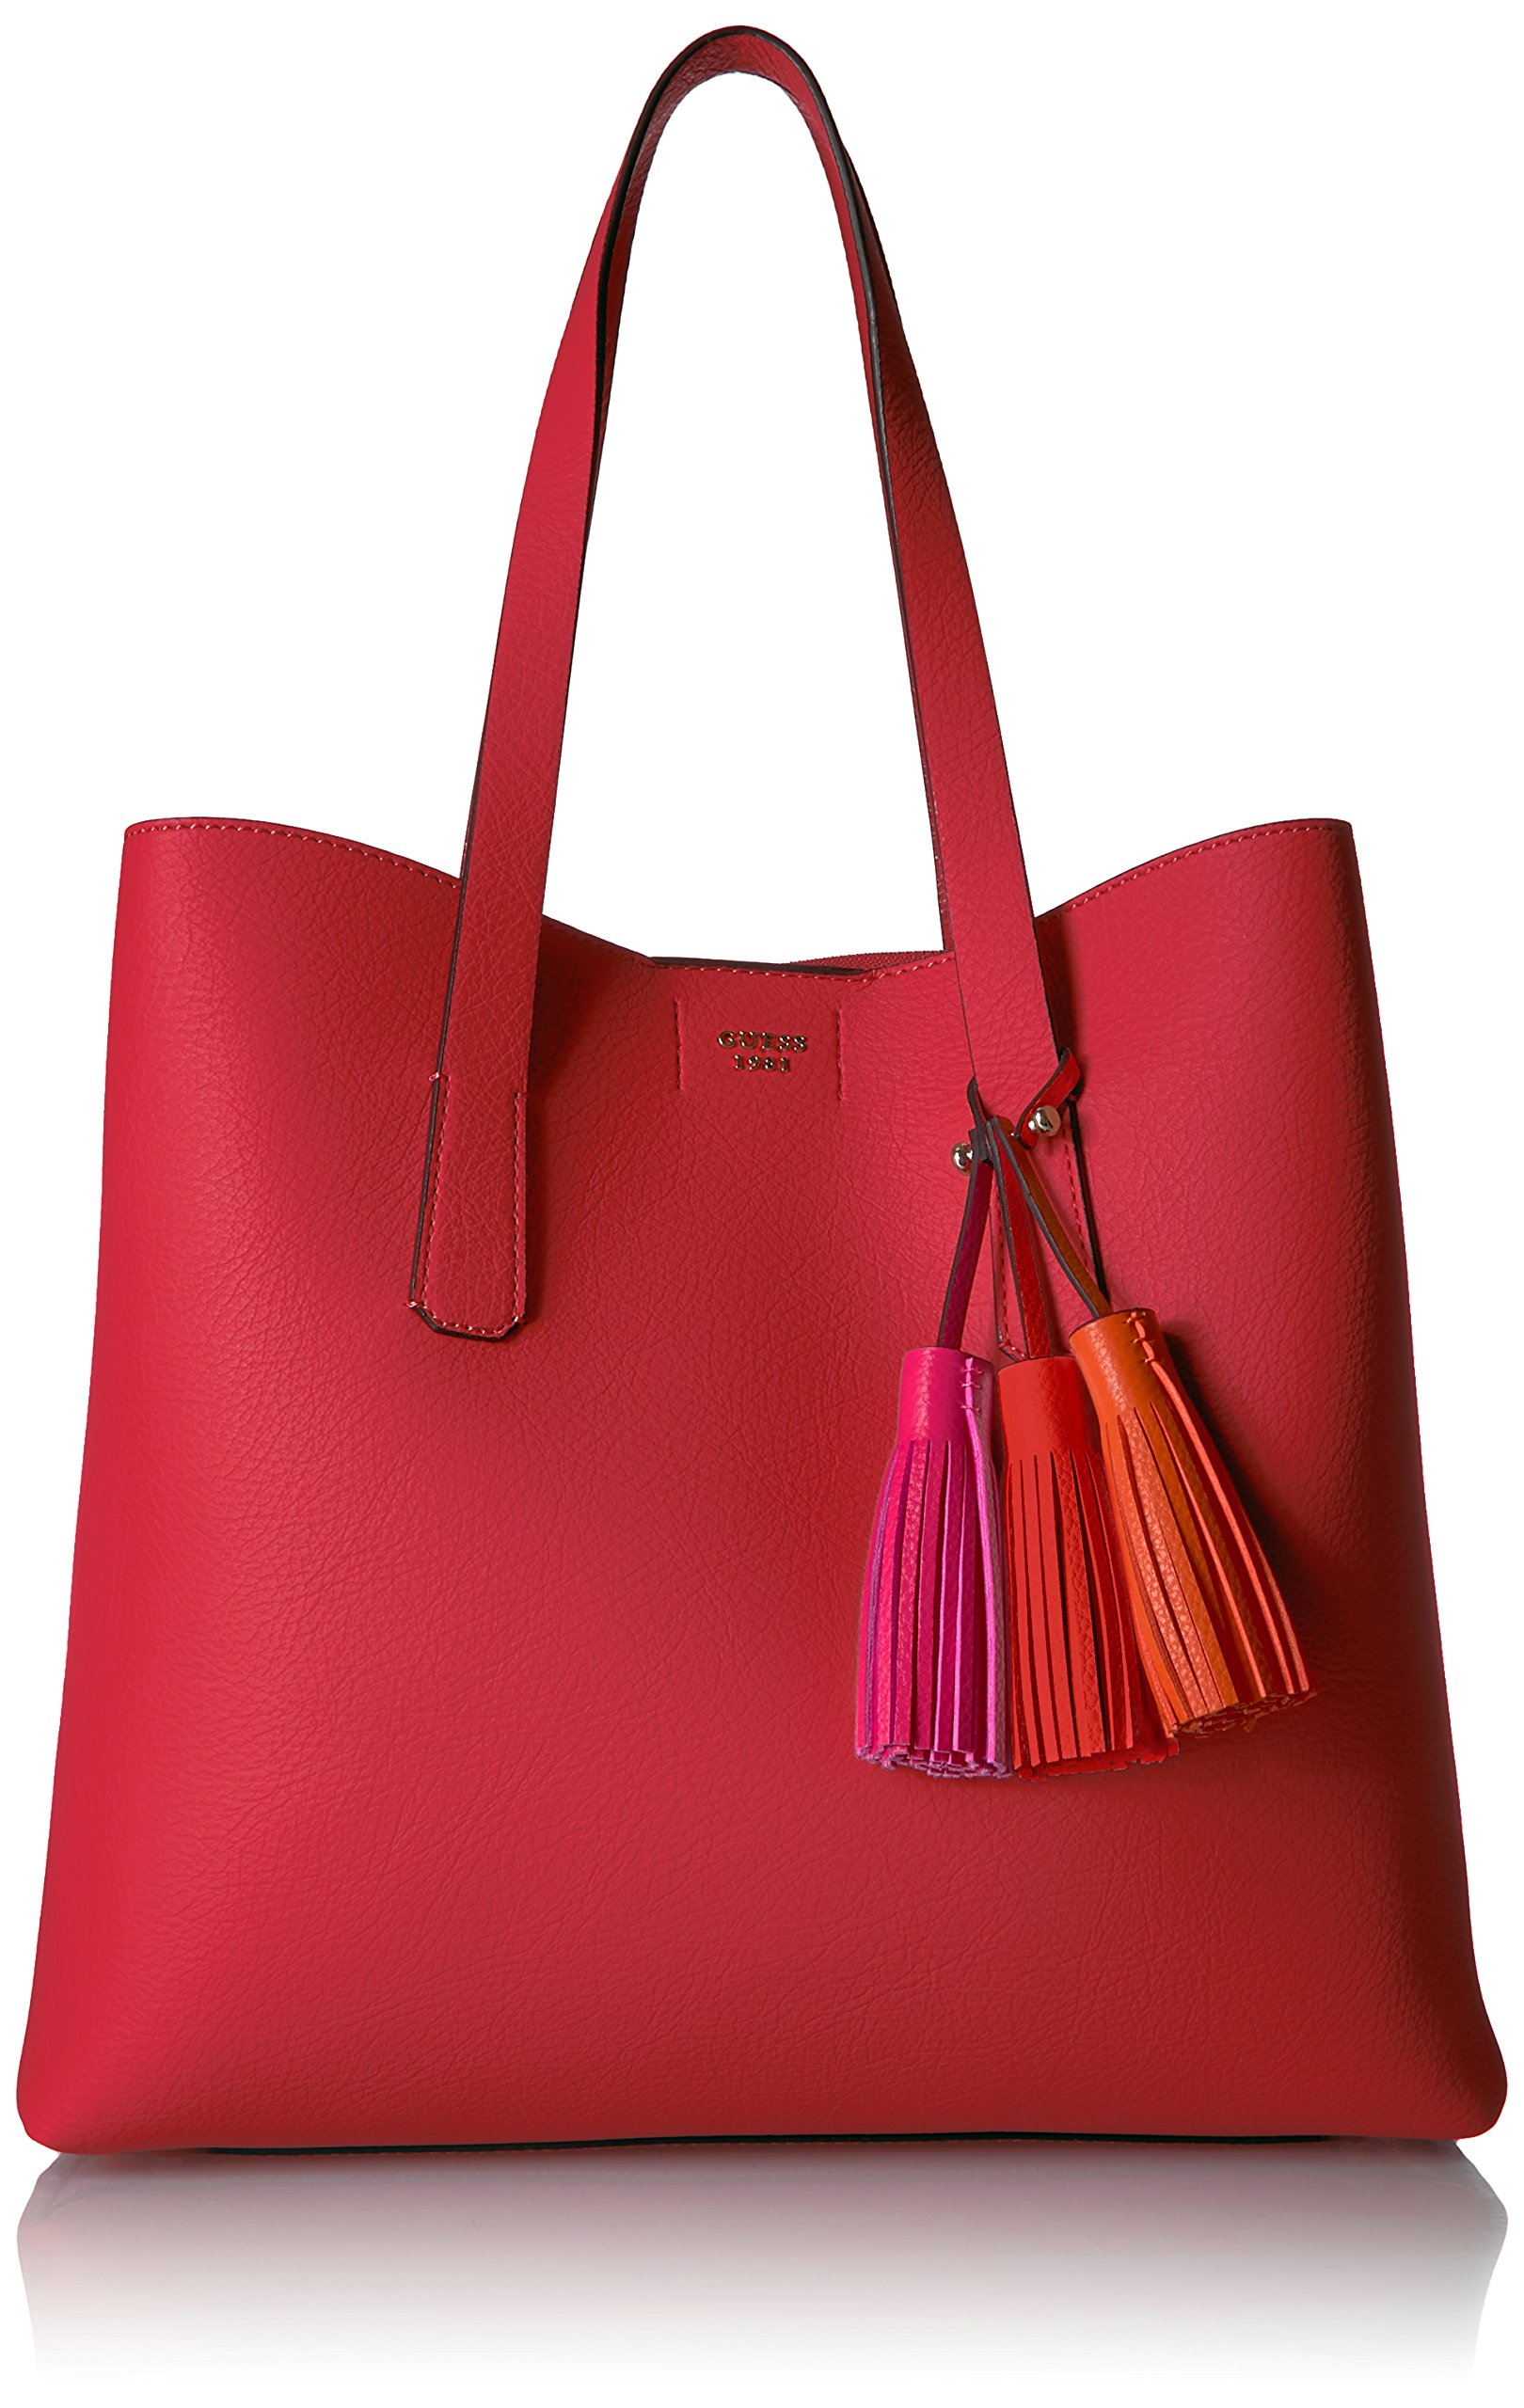 GUESS Trudy Tote, Poppy